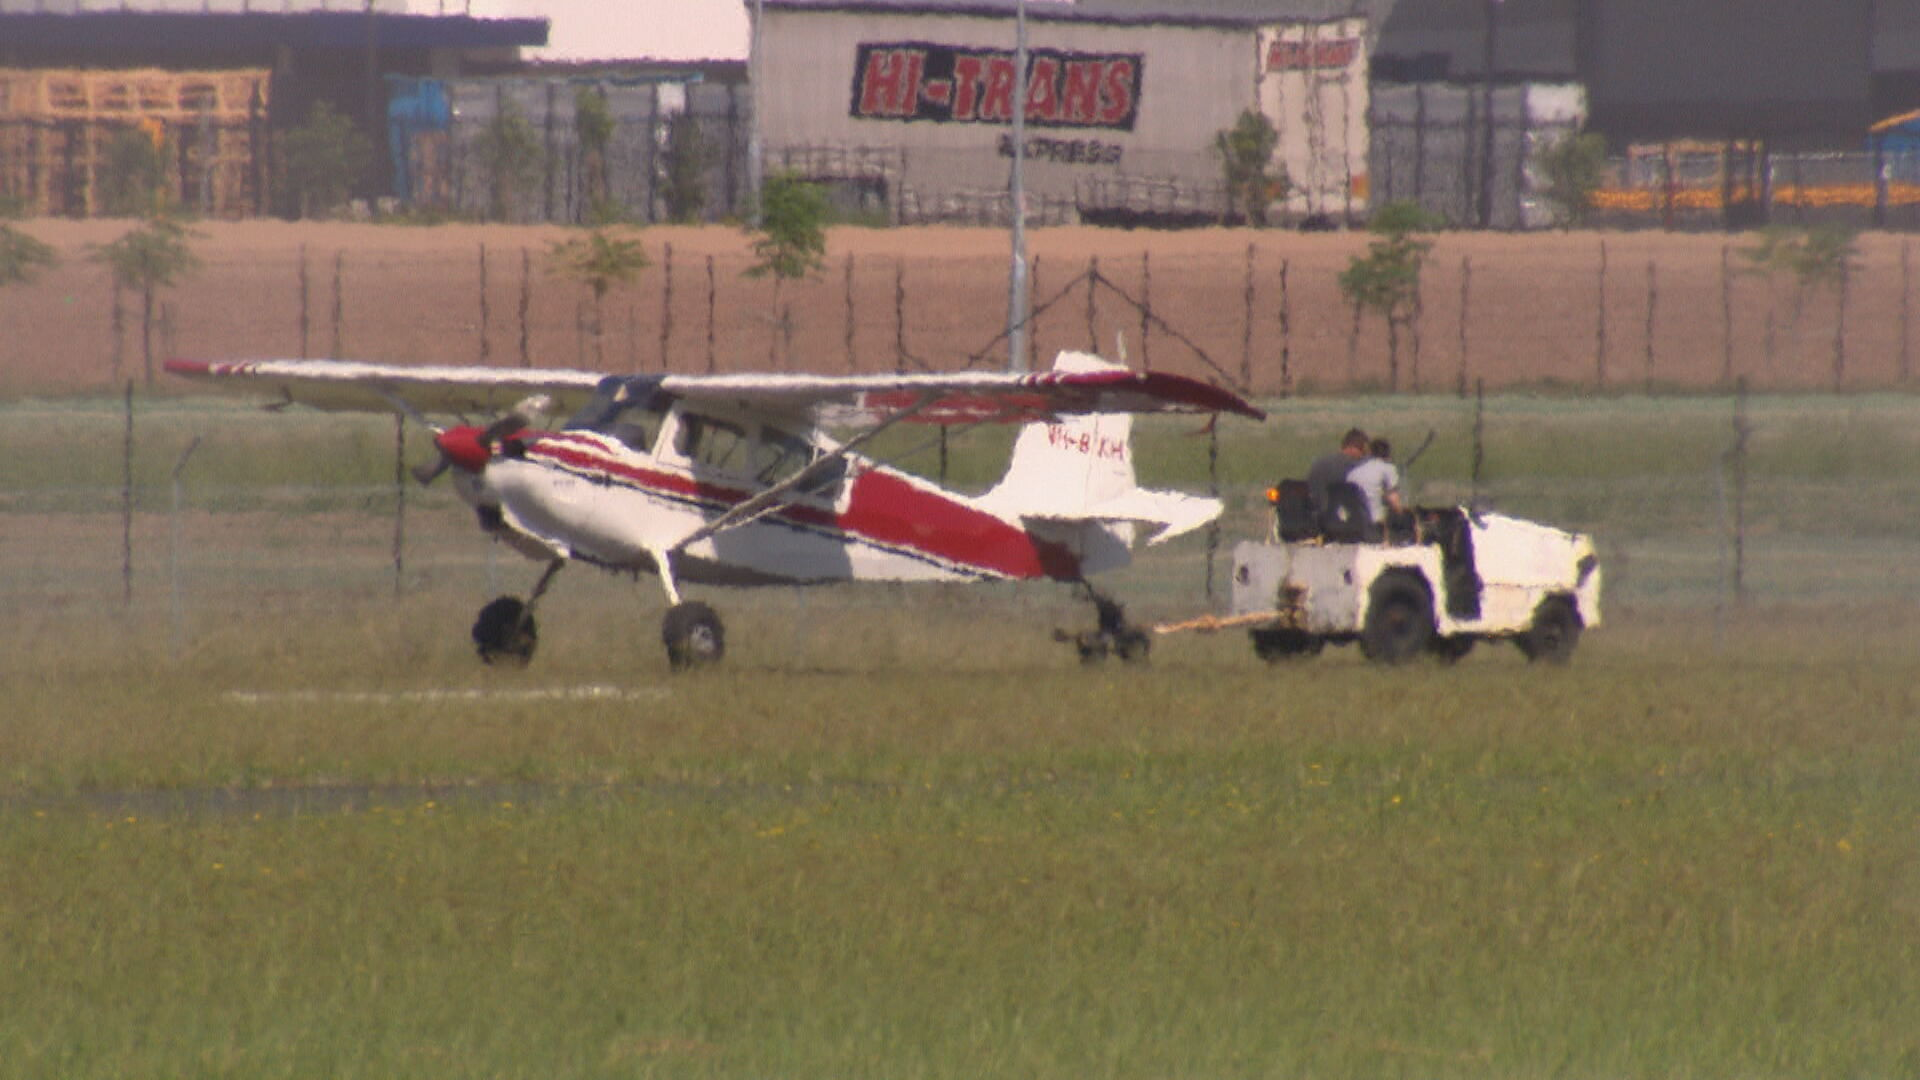 The 51-year-old pilot of the plane managed to escape with minor injuries.